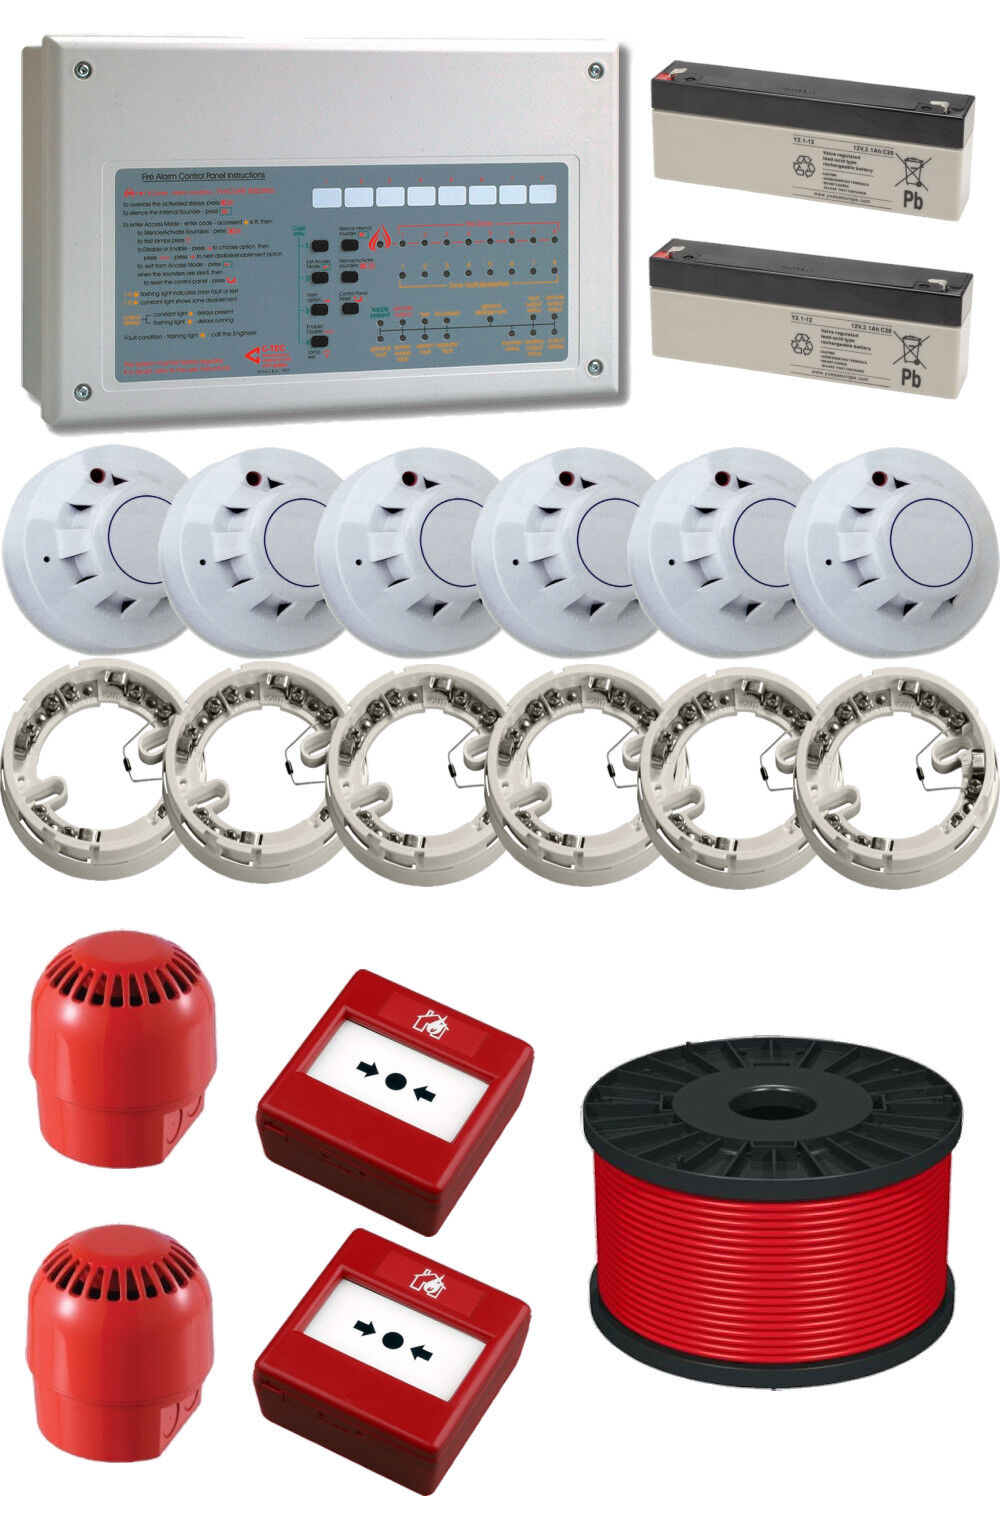 hight resolution of details about wired conventional 2 zone fire alarm kit with fireproof cable used by the pros